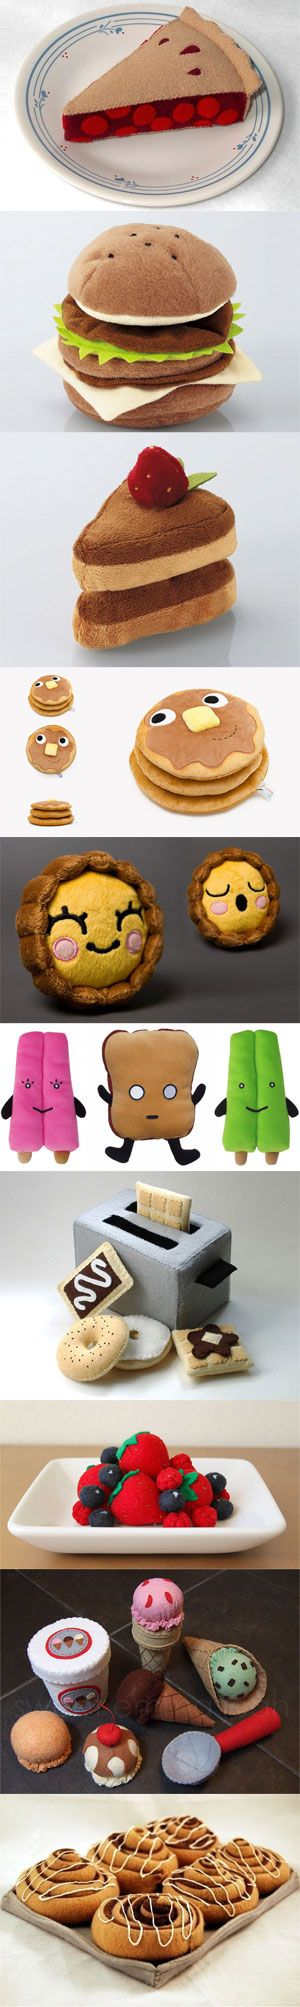 A Nice Gallery of Overly Cute Plush Food Toys